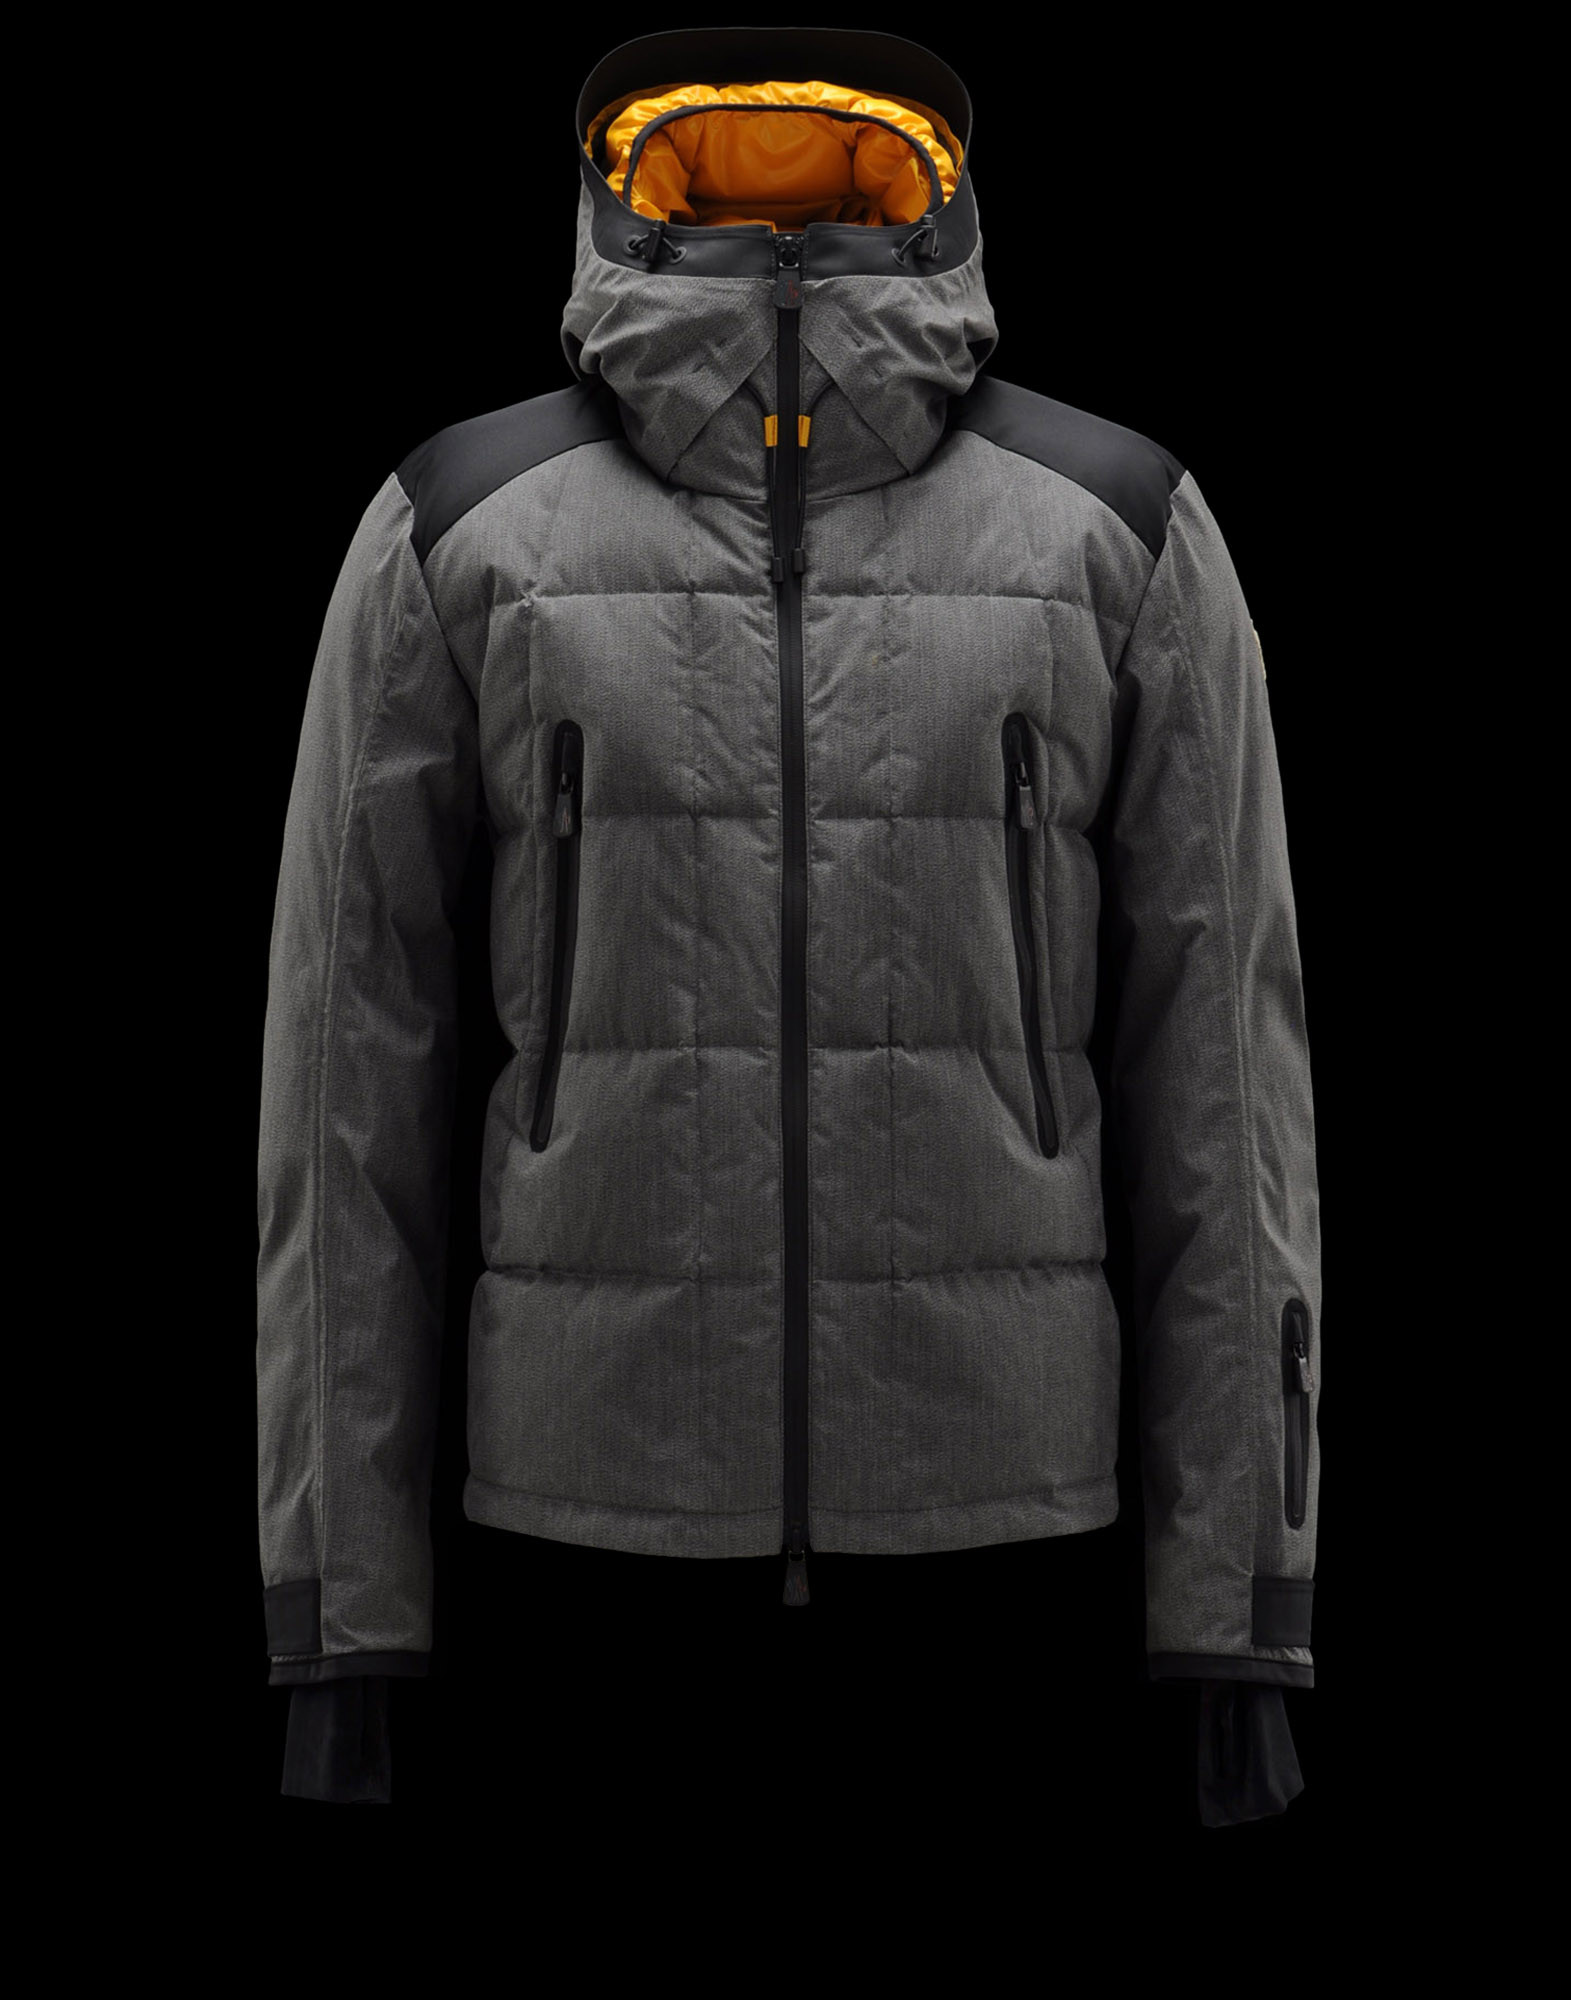 lowest price 00207 50d5f best place buy italia moncler outlet - Save up to 68% Now ...